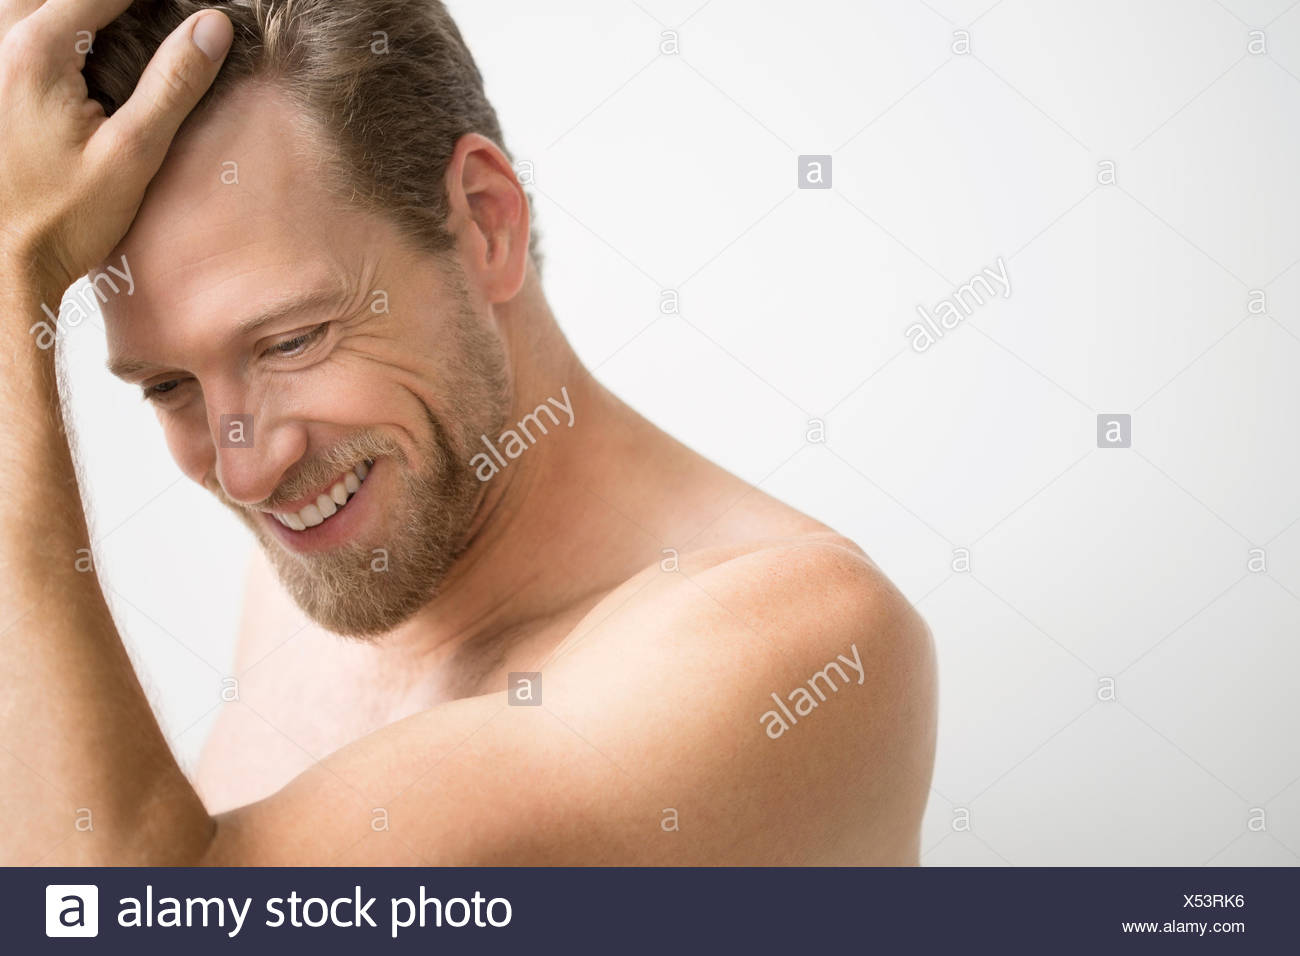 Smiling blonde man with bare chest Photo Stock